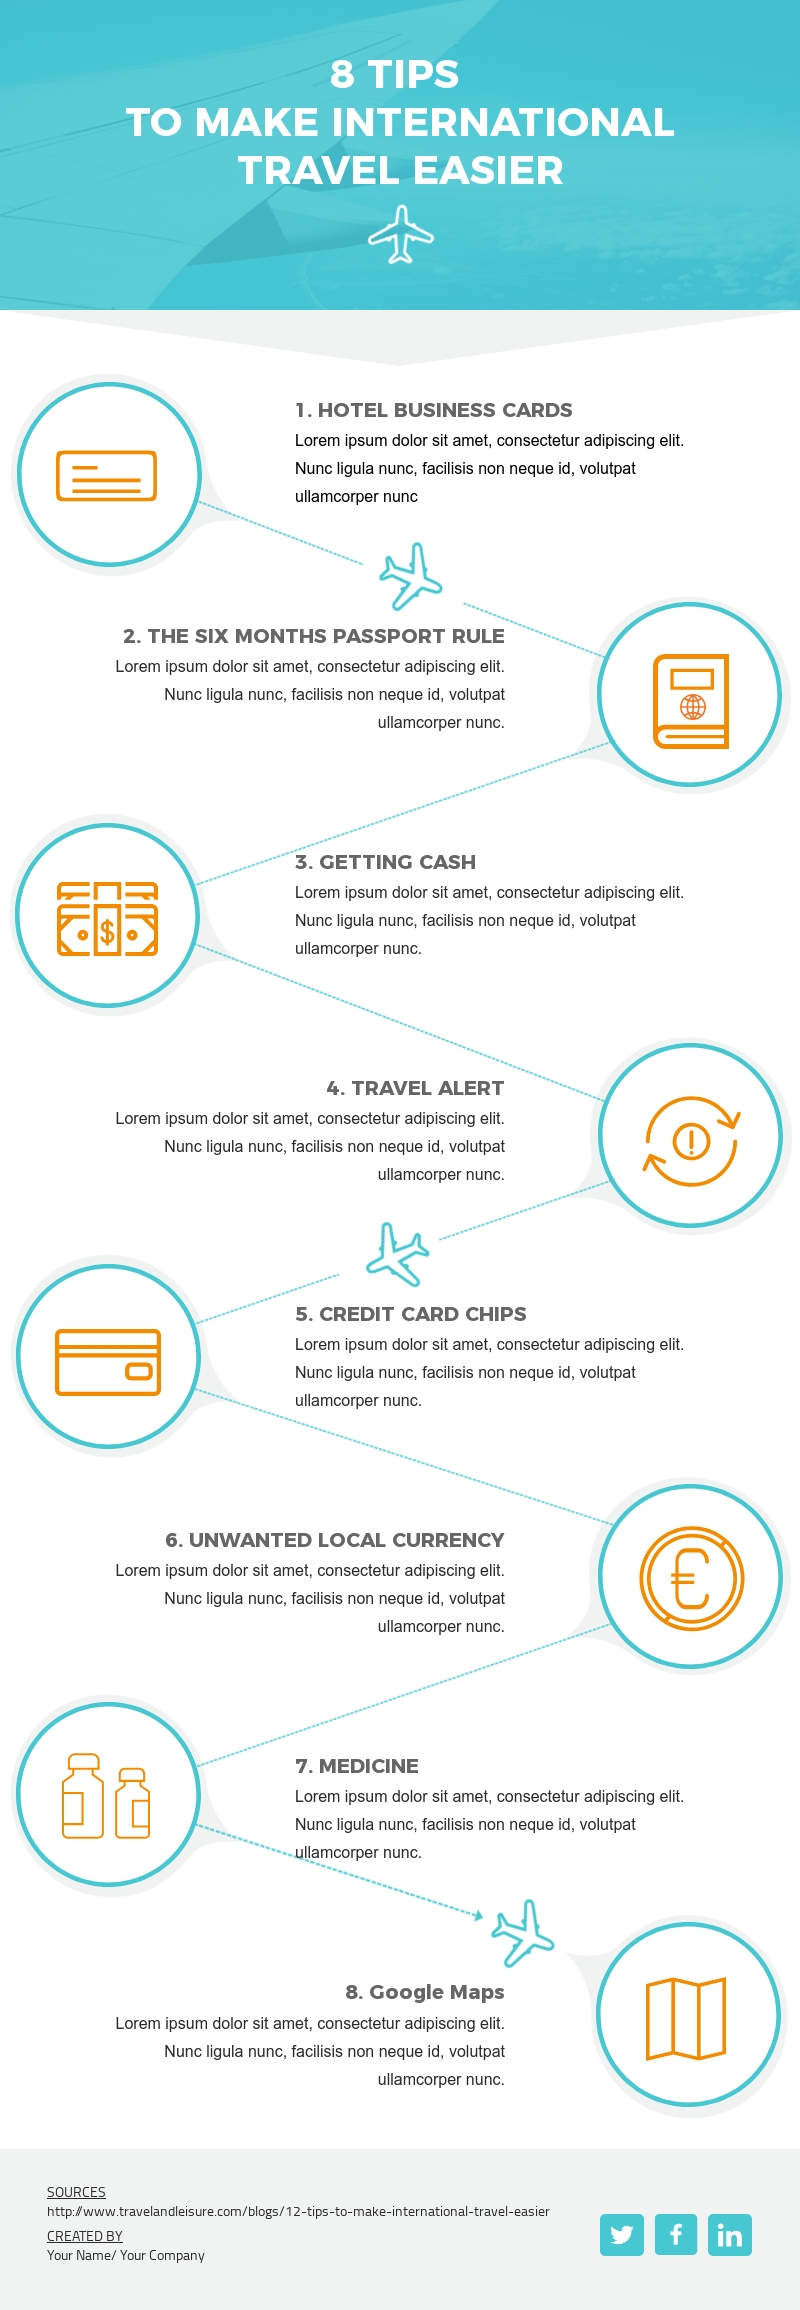 8 Tips to Make International Travel Easier - Infographic Template